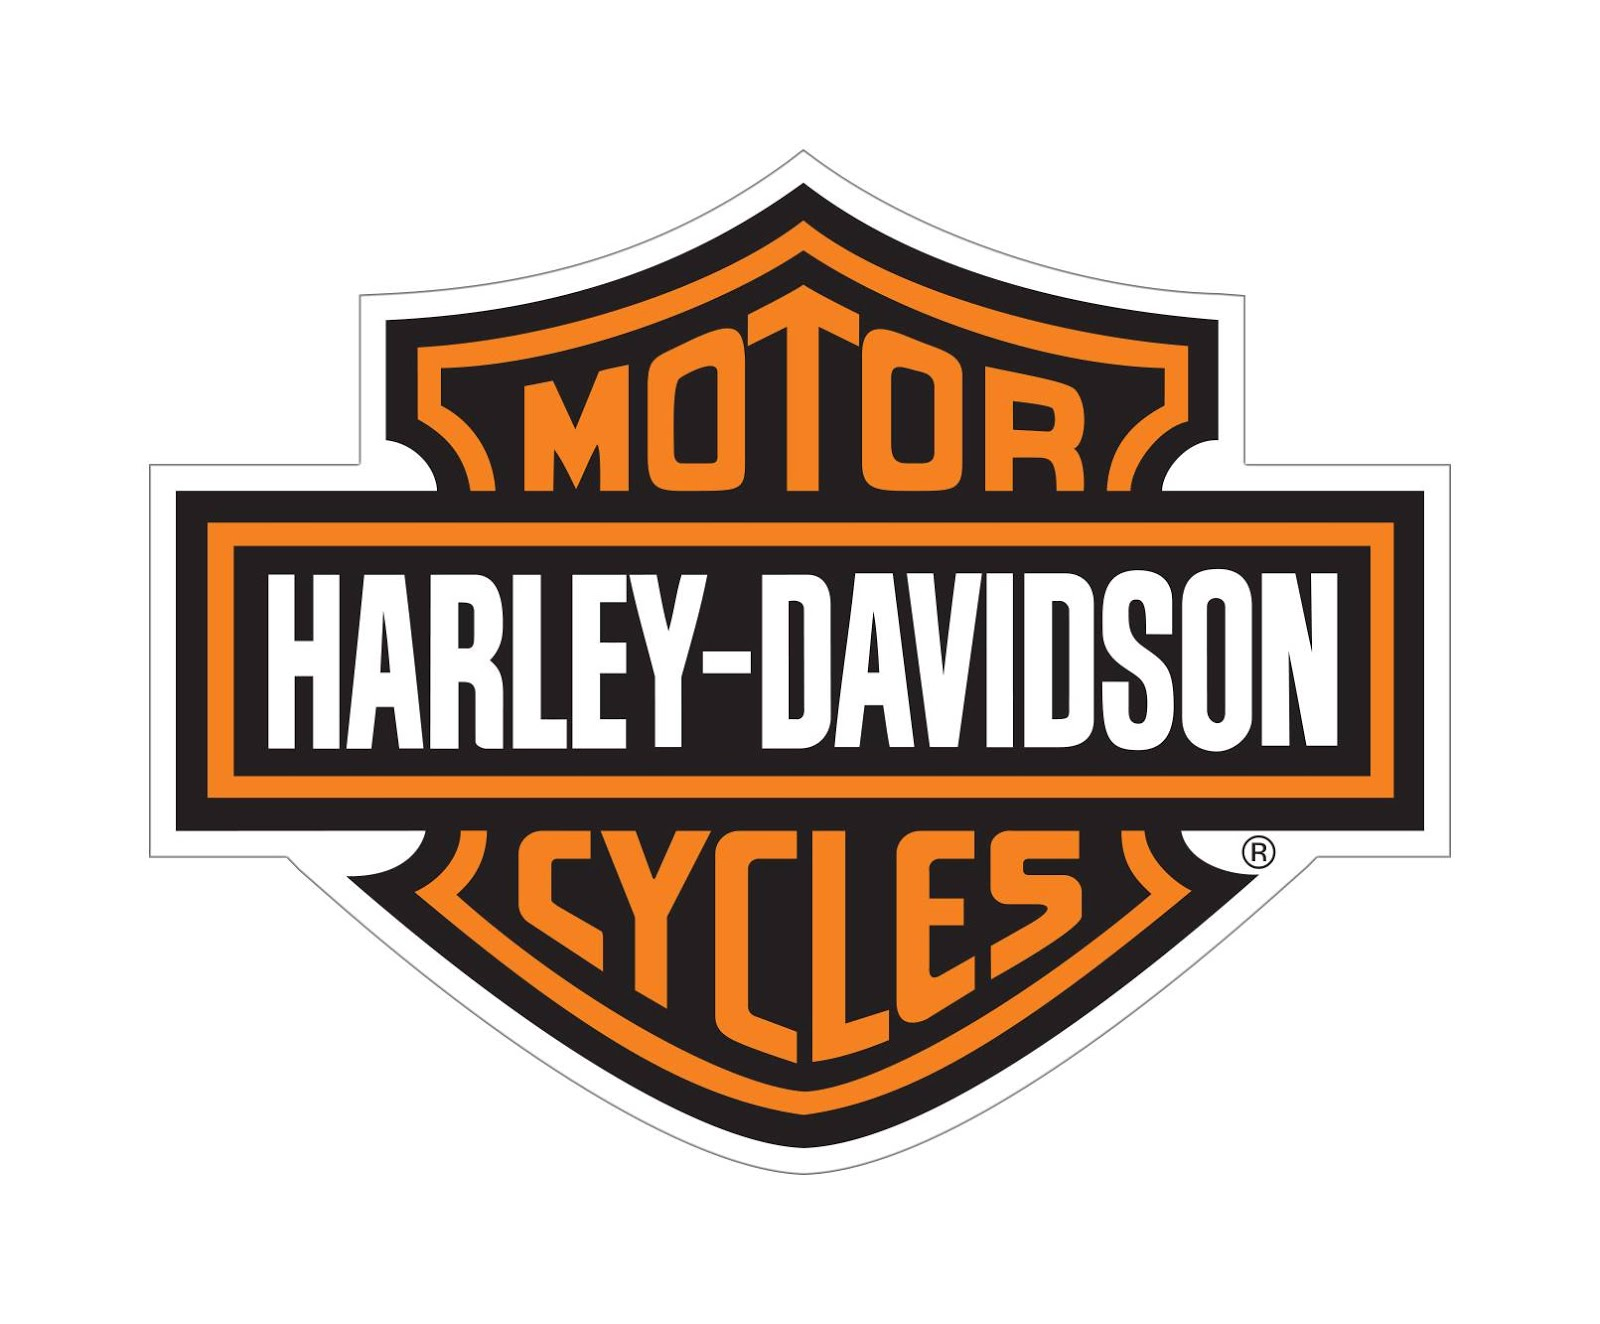 Thank you Harley-Davidson!